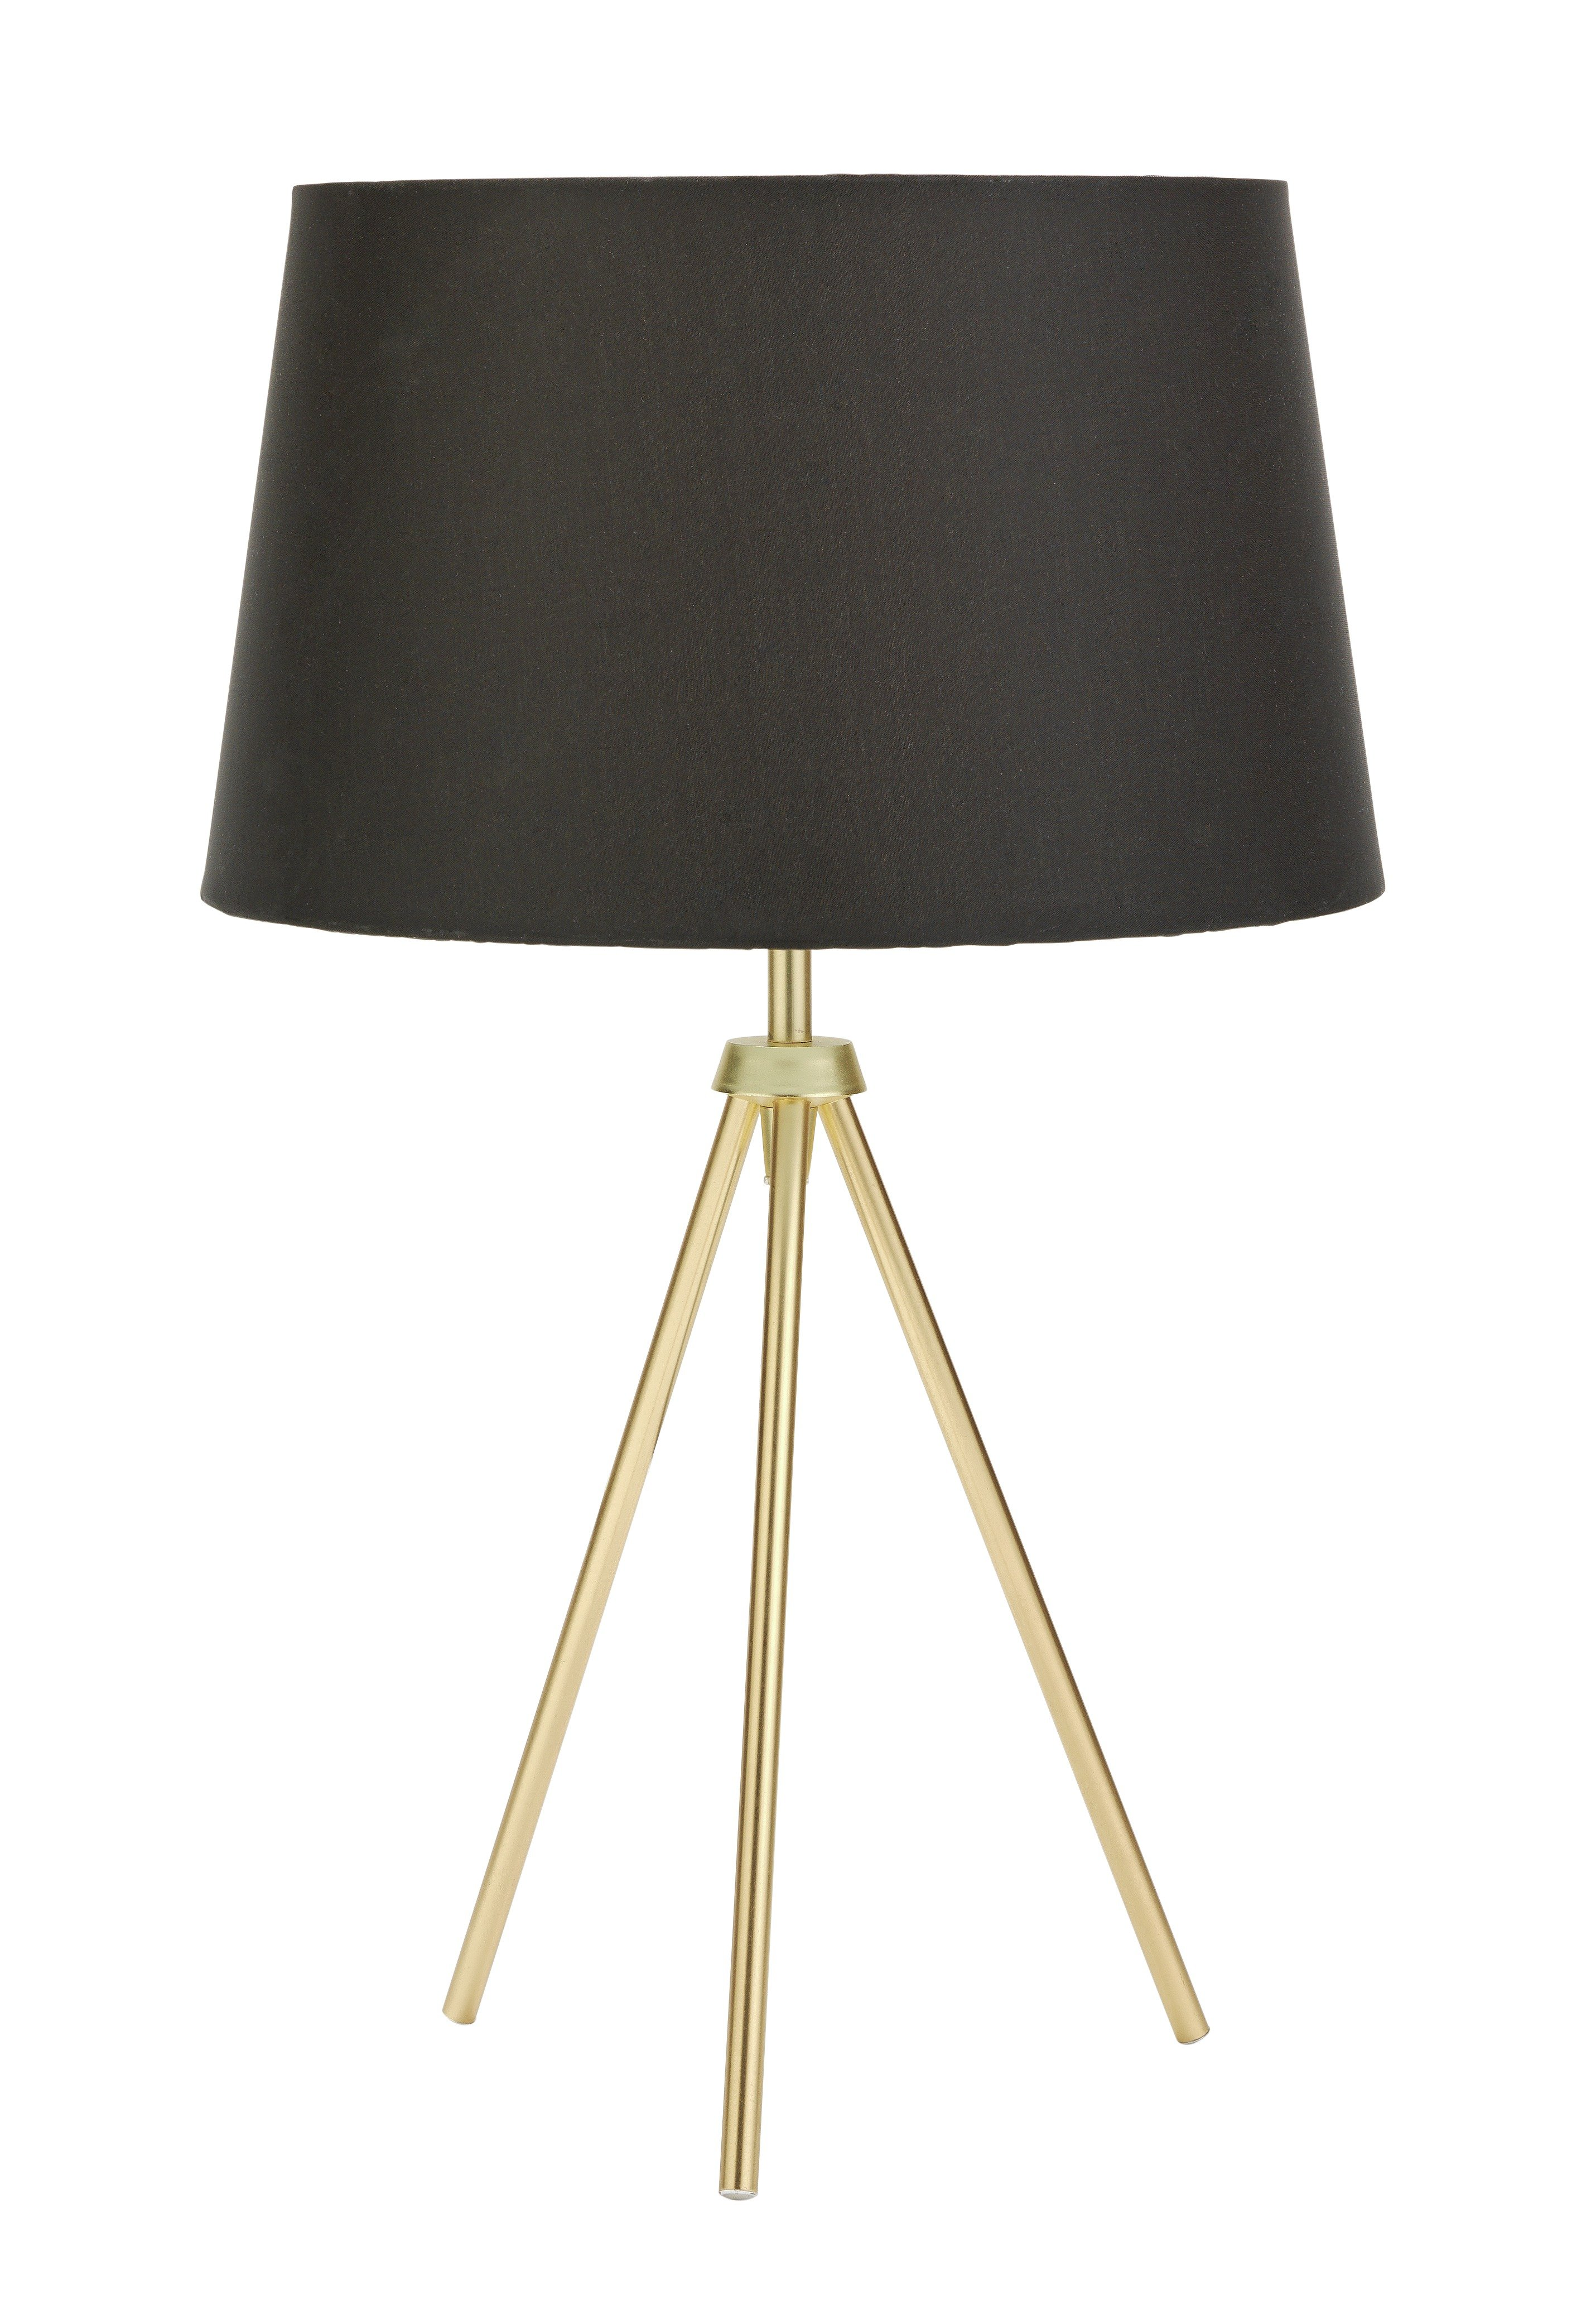 Collection trilby brushed brass tripod table lamp black for Cheap tripod lamp